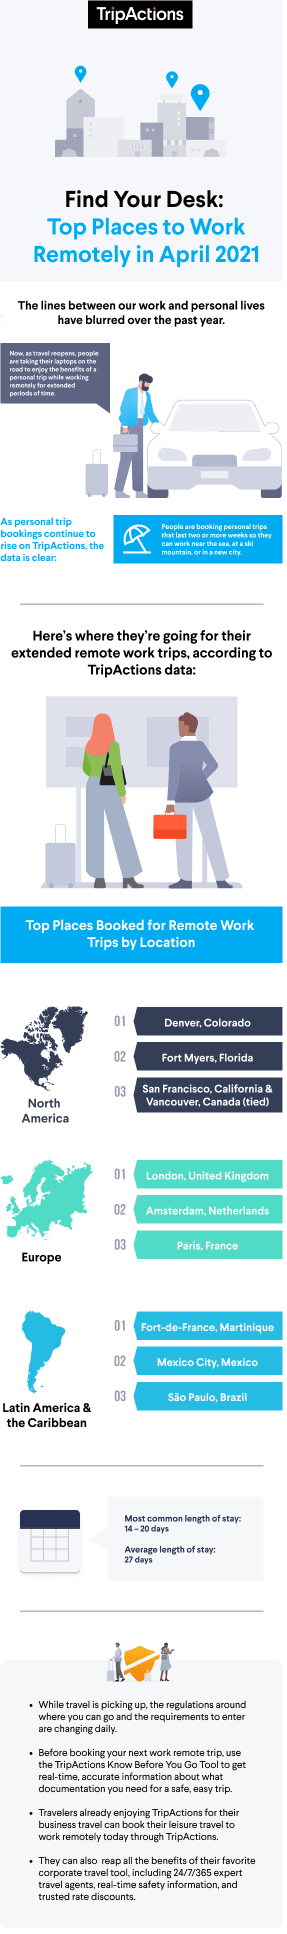 This is an infographic highlighting the top destinations to work remotely, according to TripActions data for April 2021.